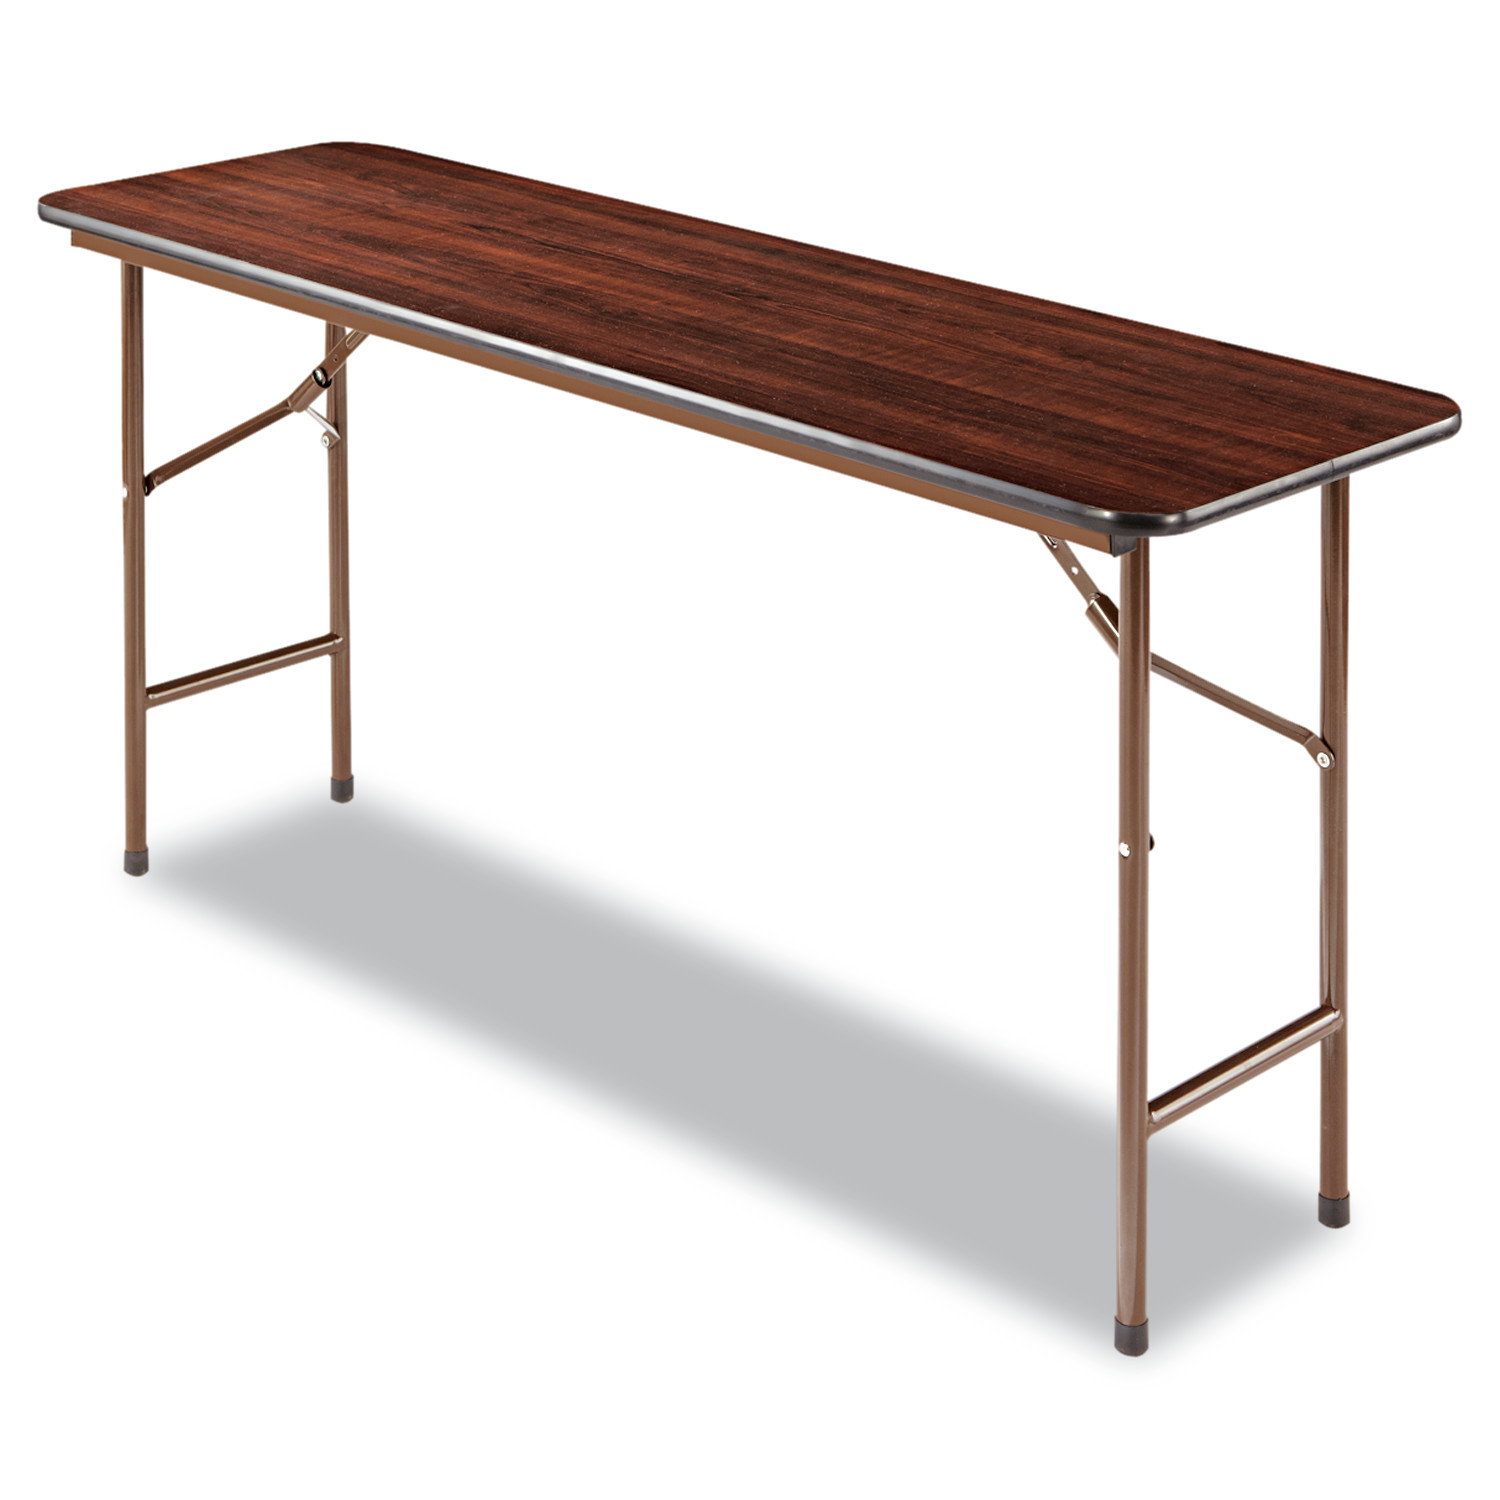 Alera Wood Folding Table, Rectangular, 60w x 18d x 29h, Walnut